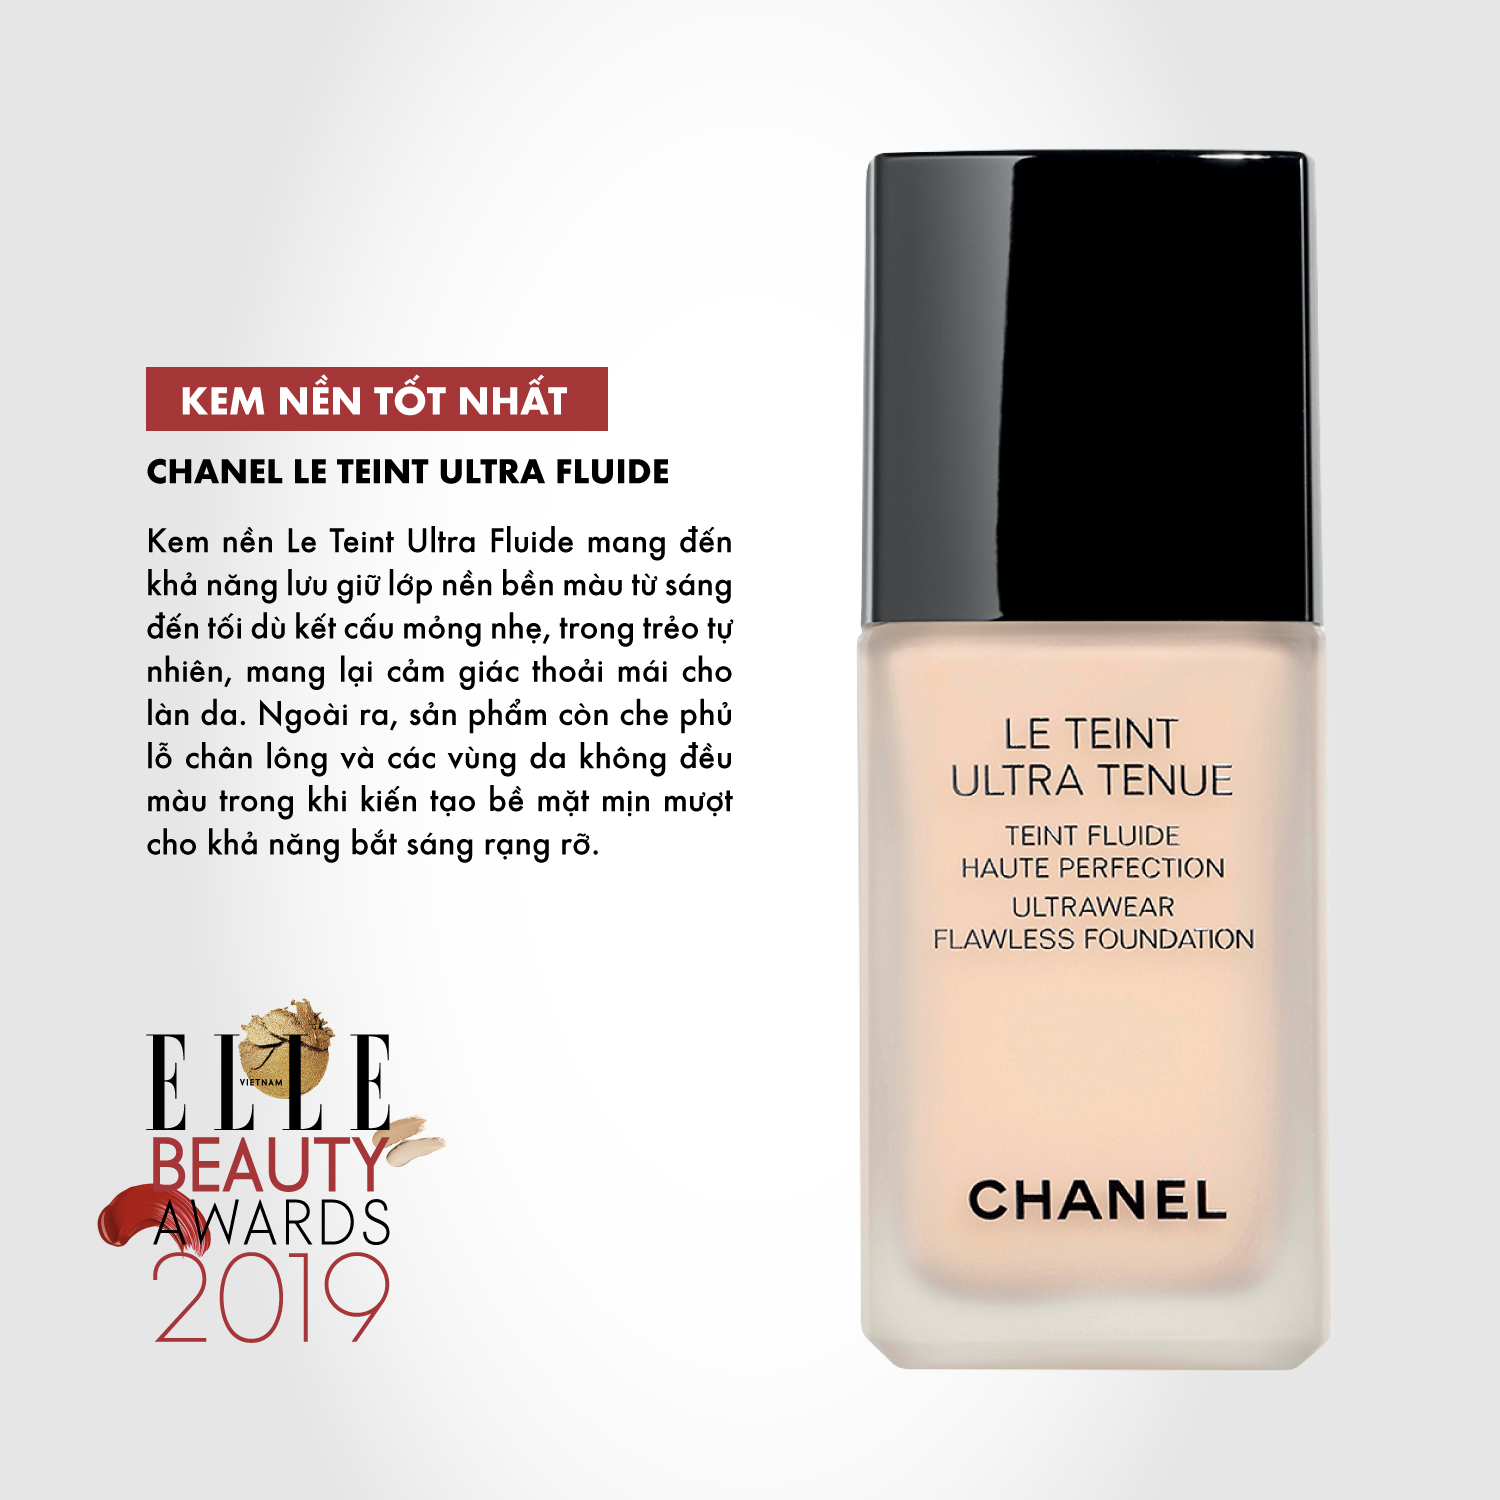 kem nền 09 ELLE Beauty Awards 2019